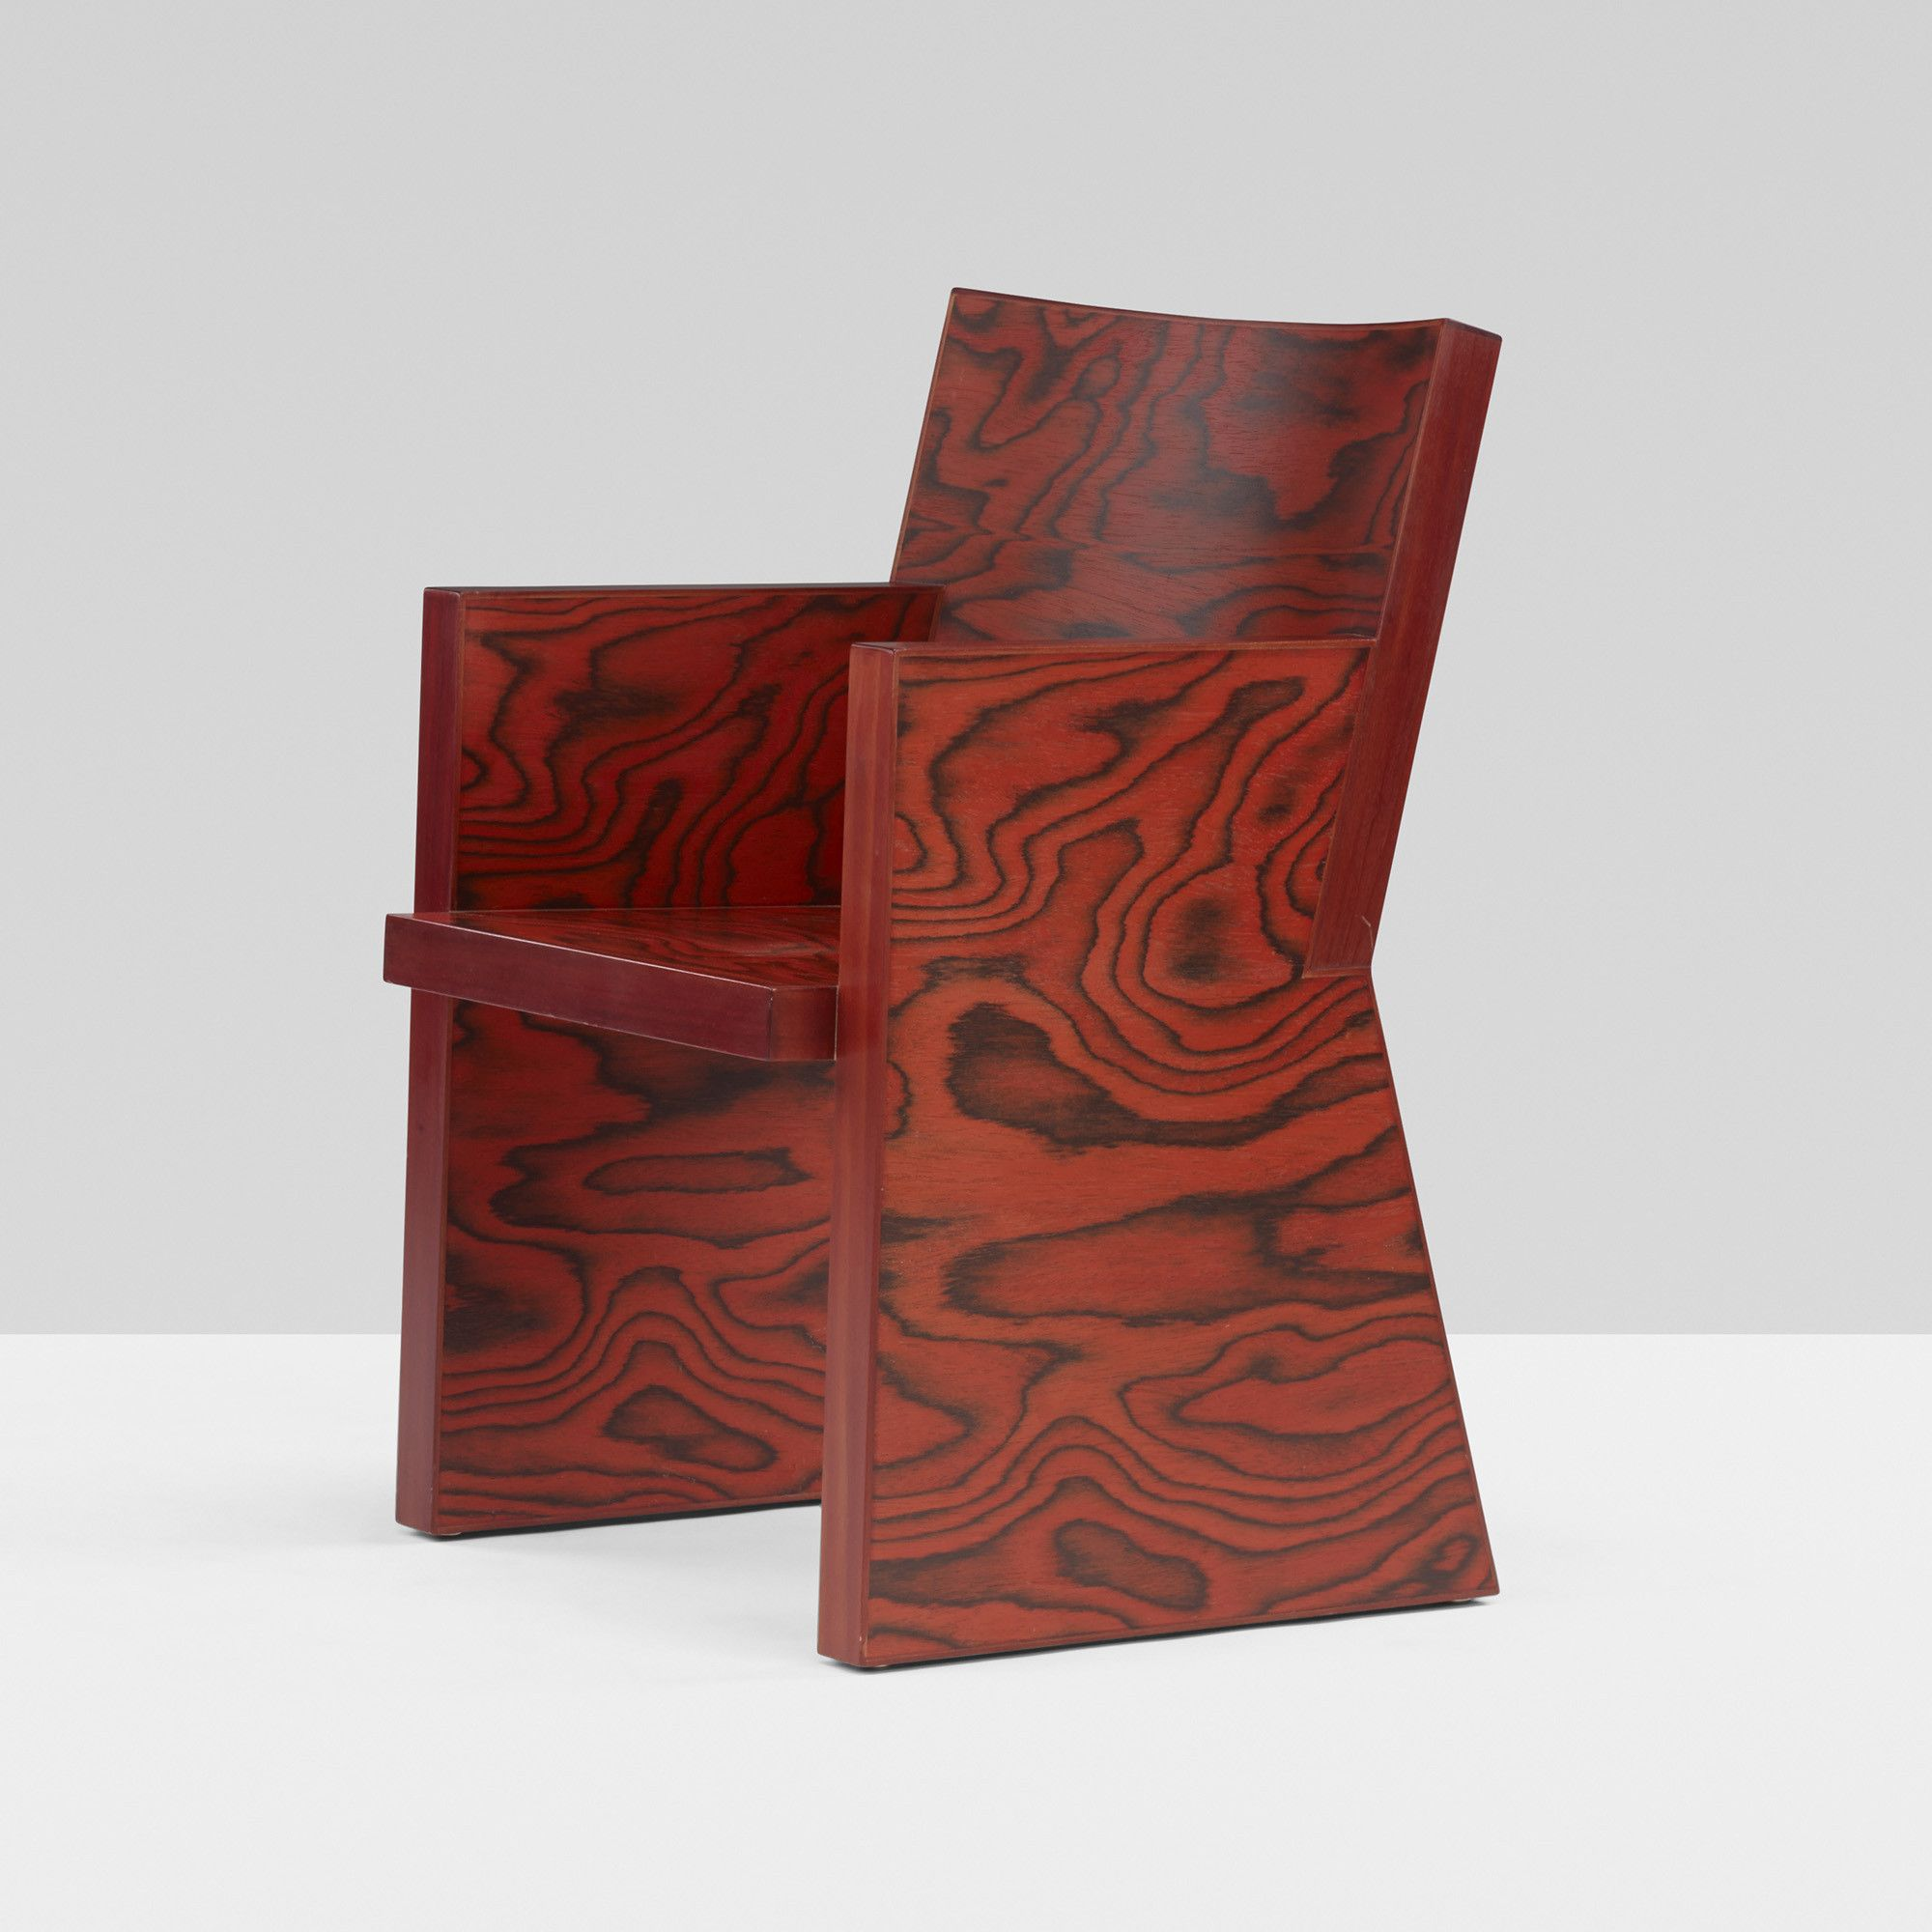 ettore sottsass in praise of epicurus chair renzo